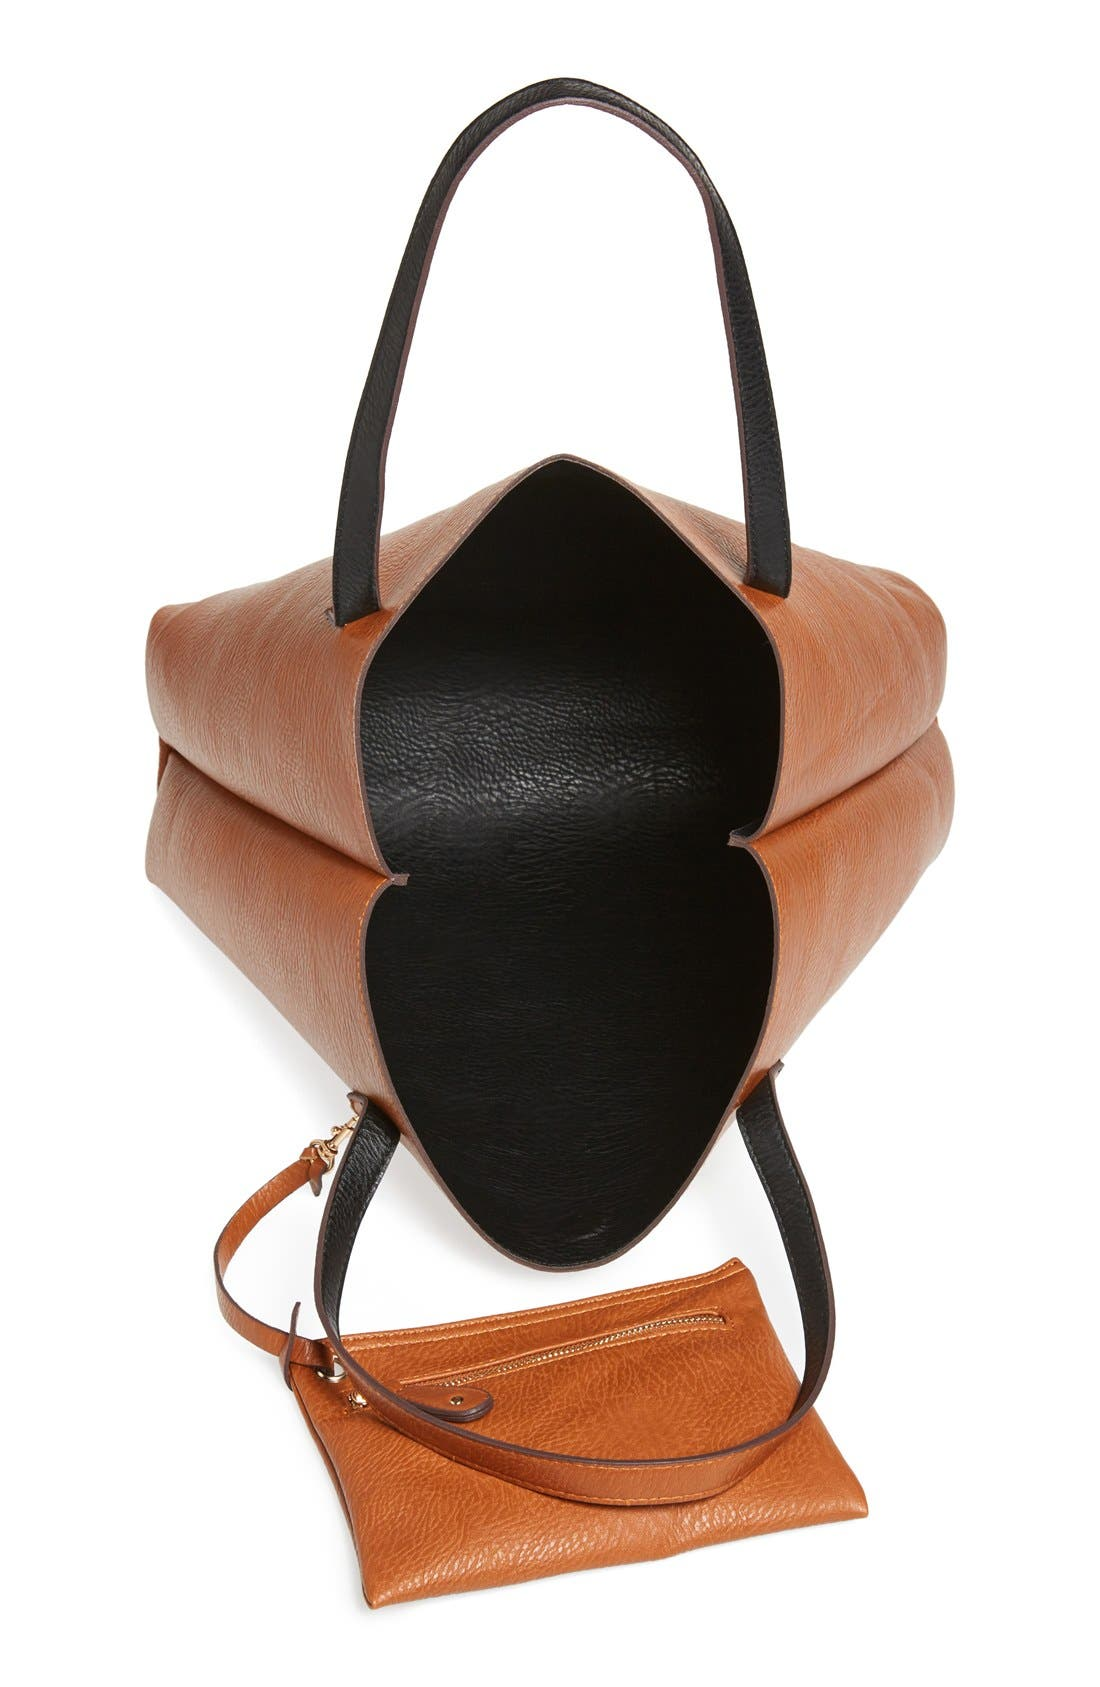 STREET LEVEL,                             Reversible Faux Leather Tote & Wristlet,                             Alternate thumbnail 8, color,                             BLACK/ COGNAC